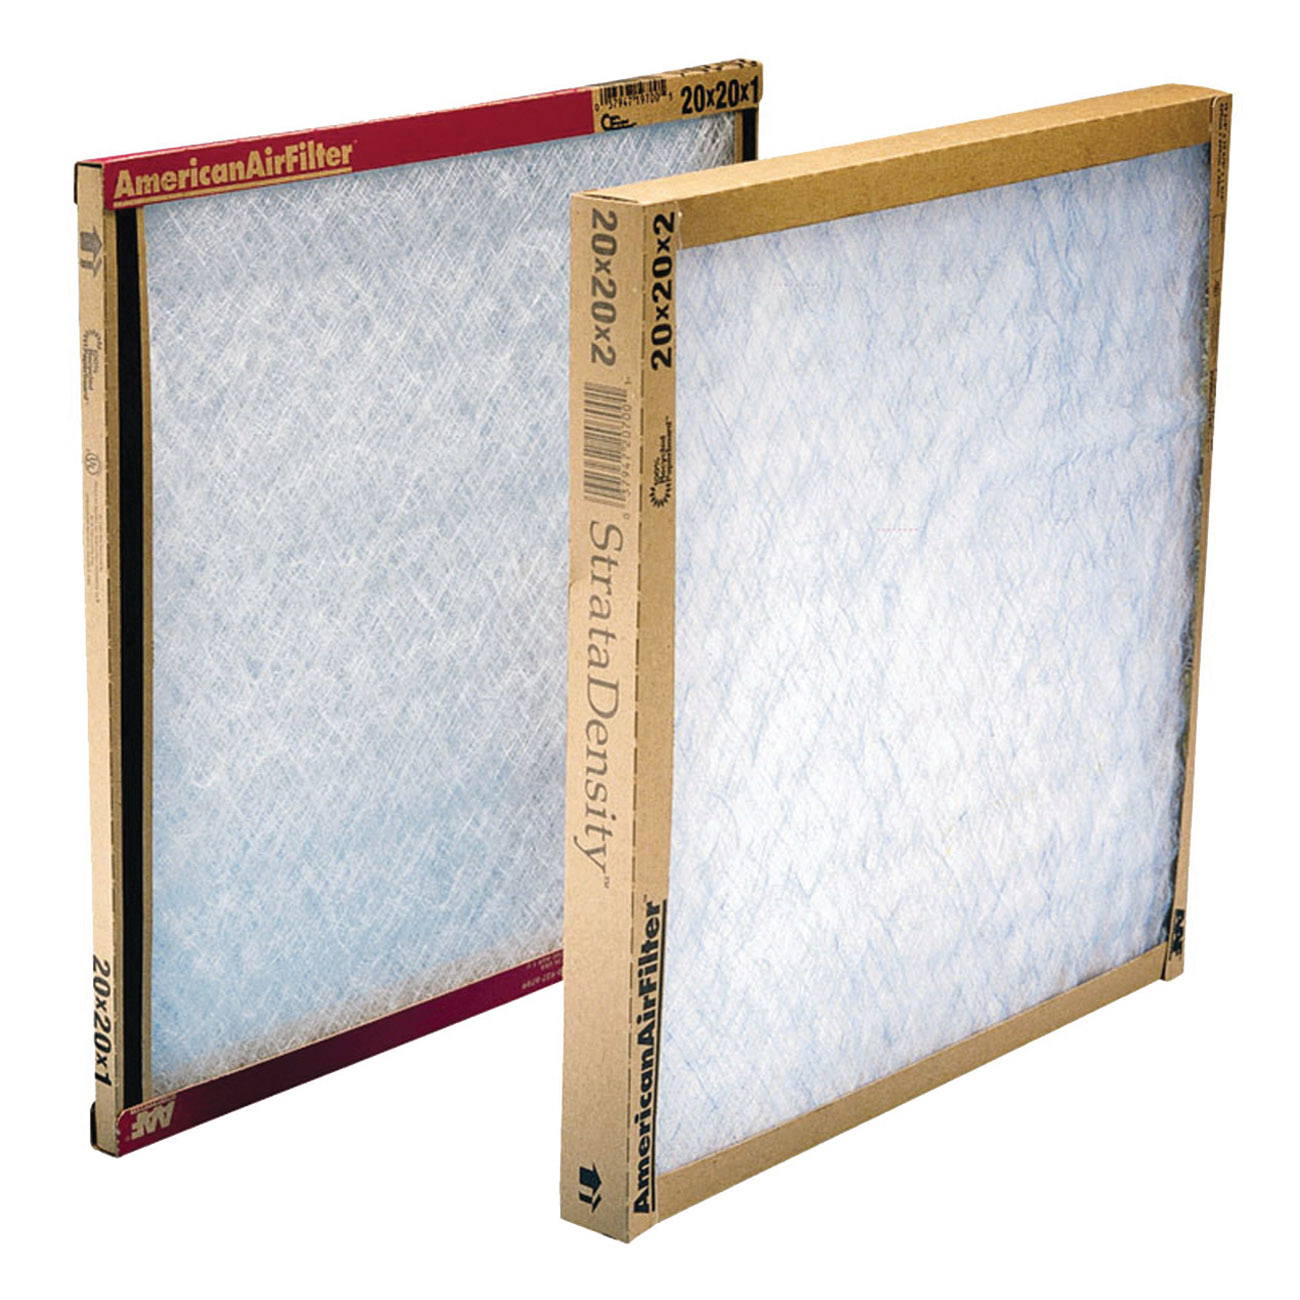 Picture of AAF 120252-1 Panel Filter, 25 in L, 20 in W, Chipboard Frame